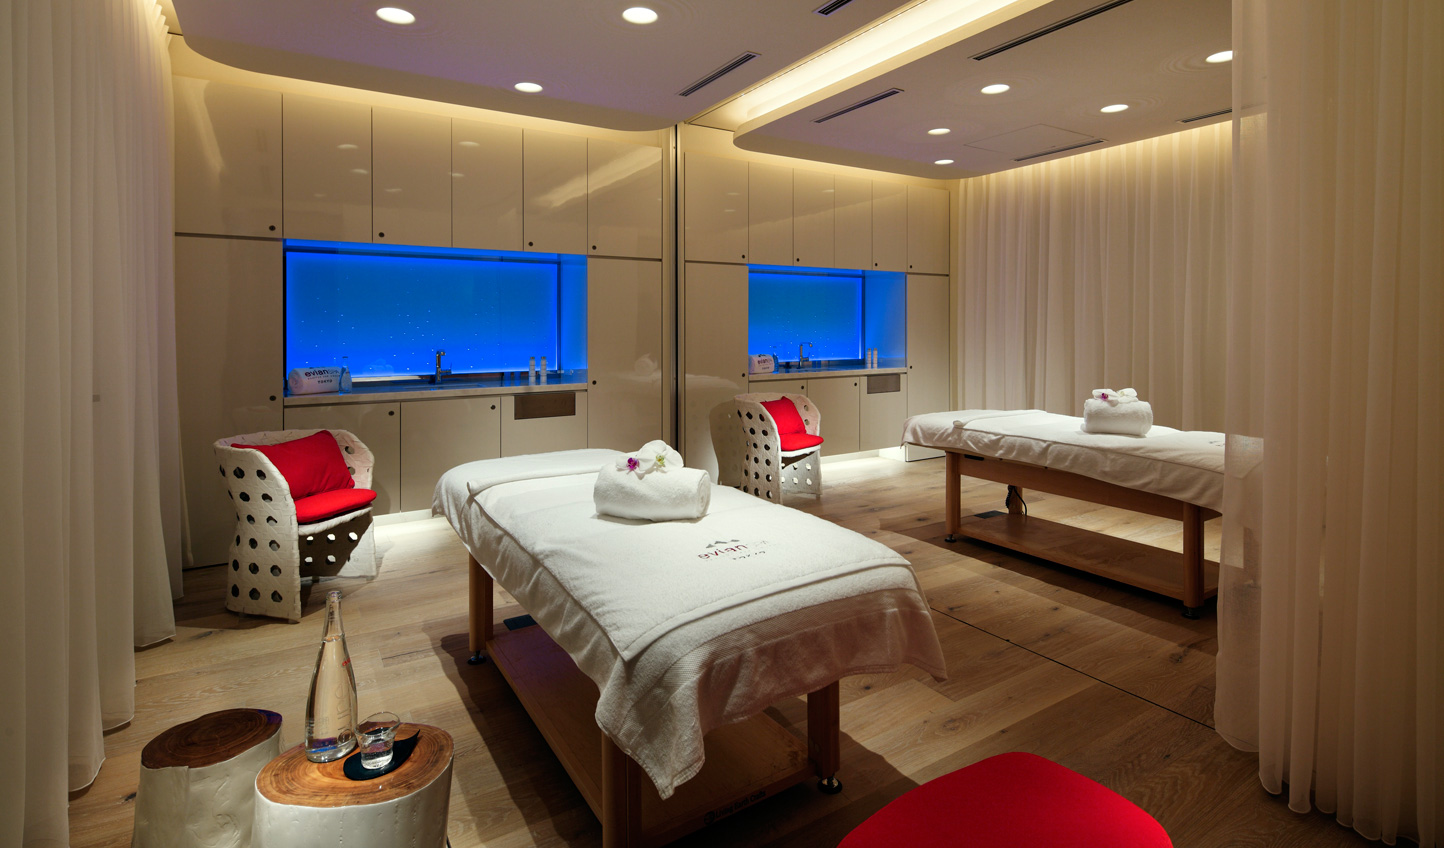 Head to the Evian Spa for a rejuvenating treatment